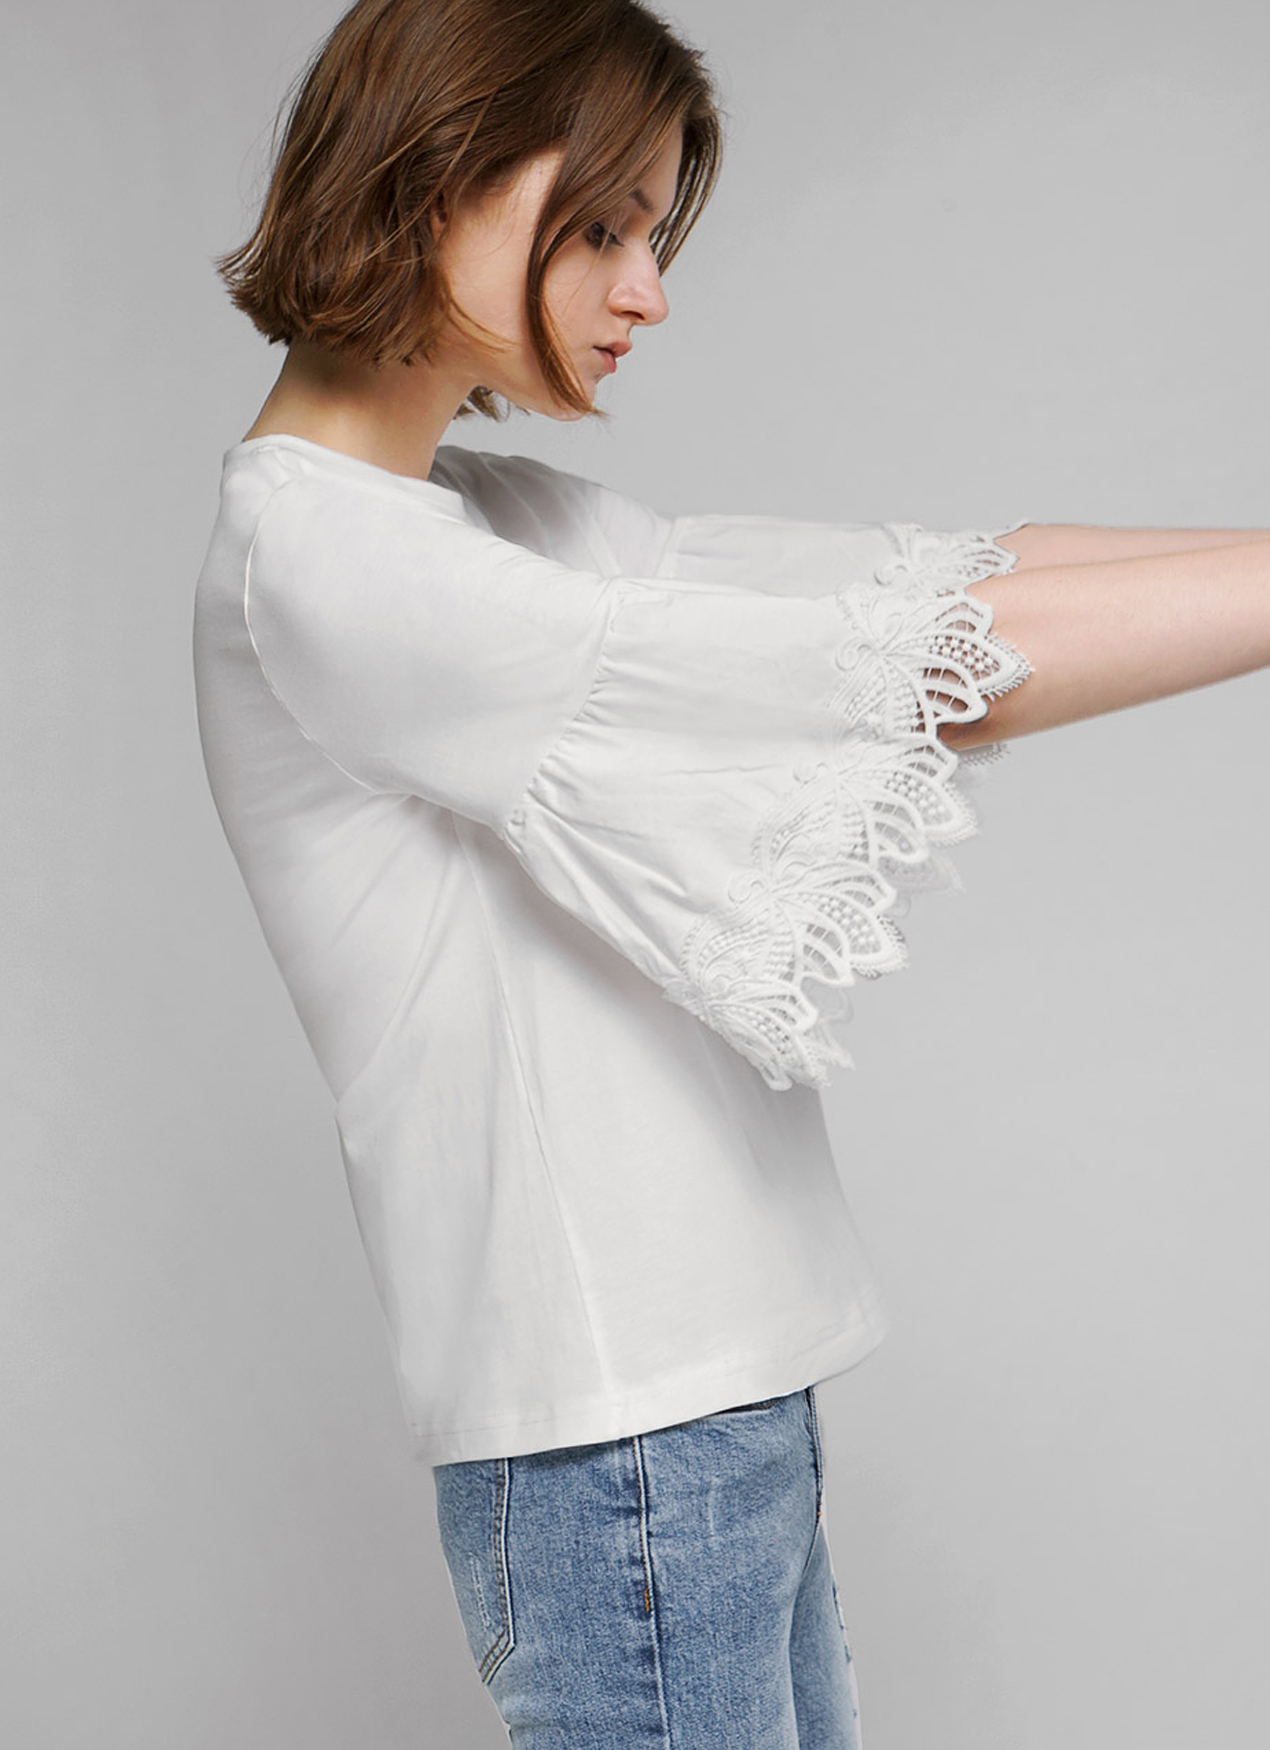 Saturday Club White Trumpet Sleeve Top With Lace Trim